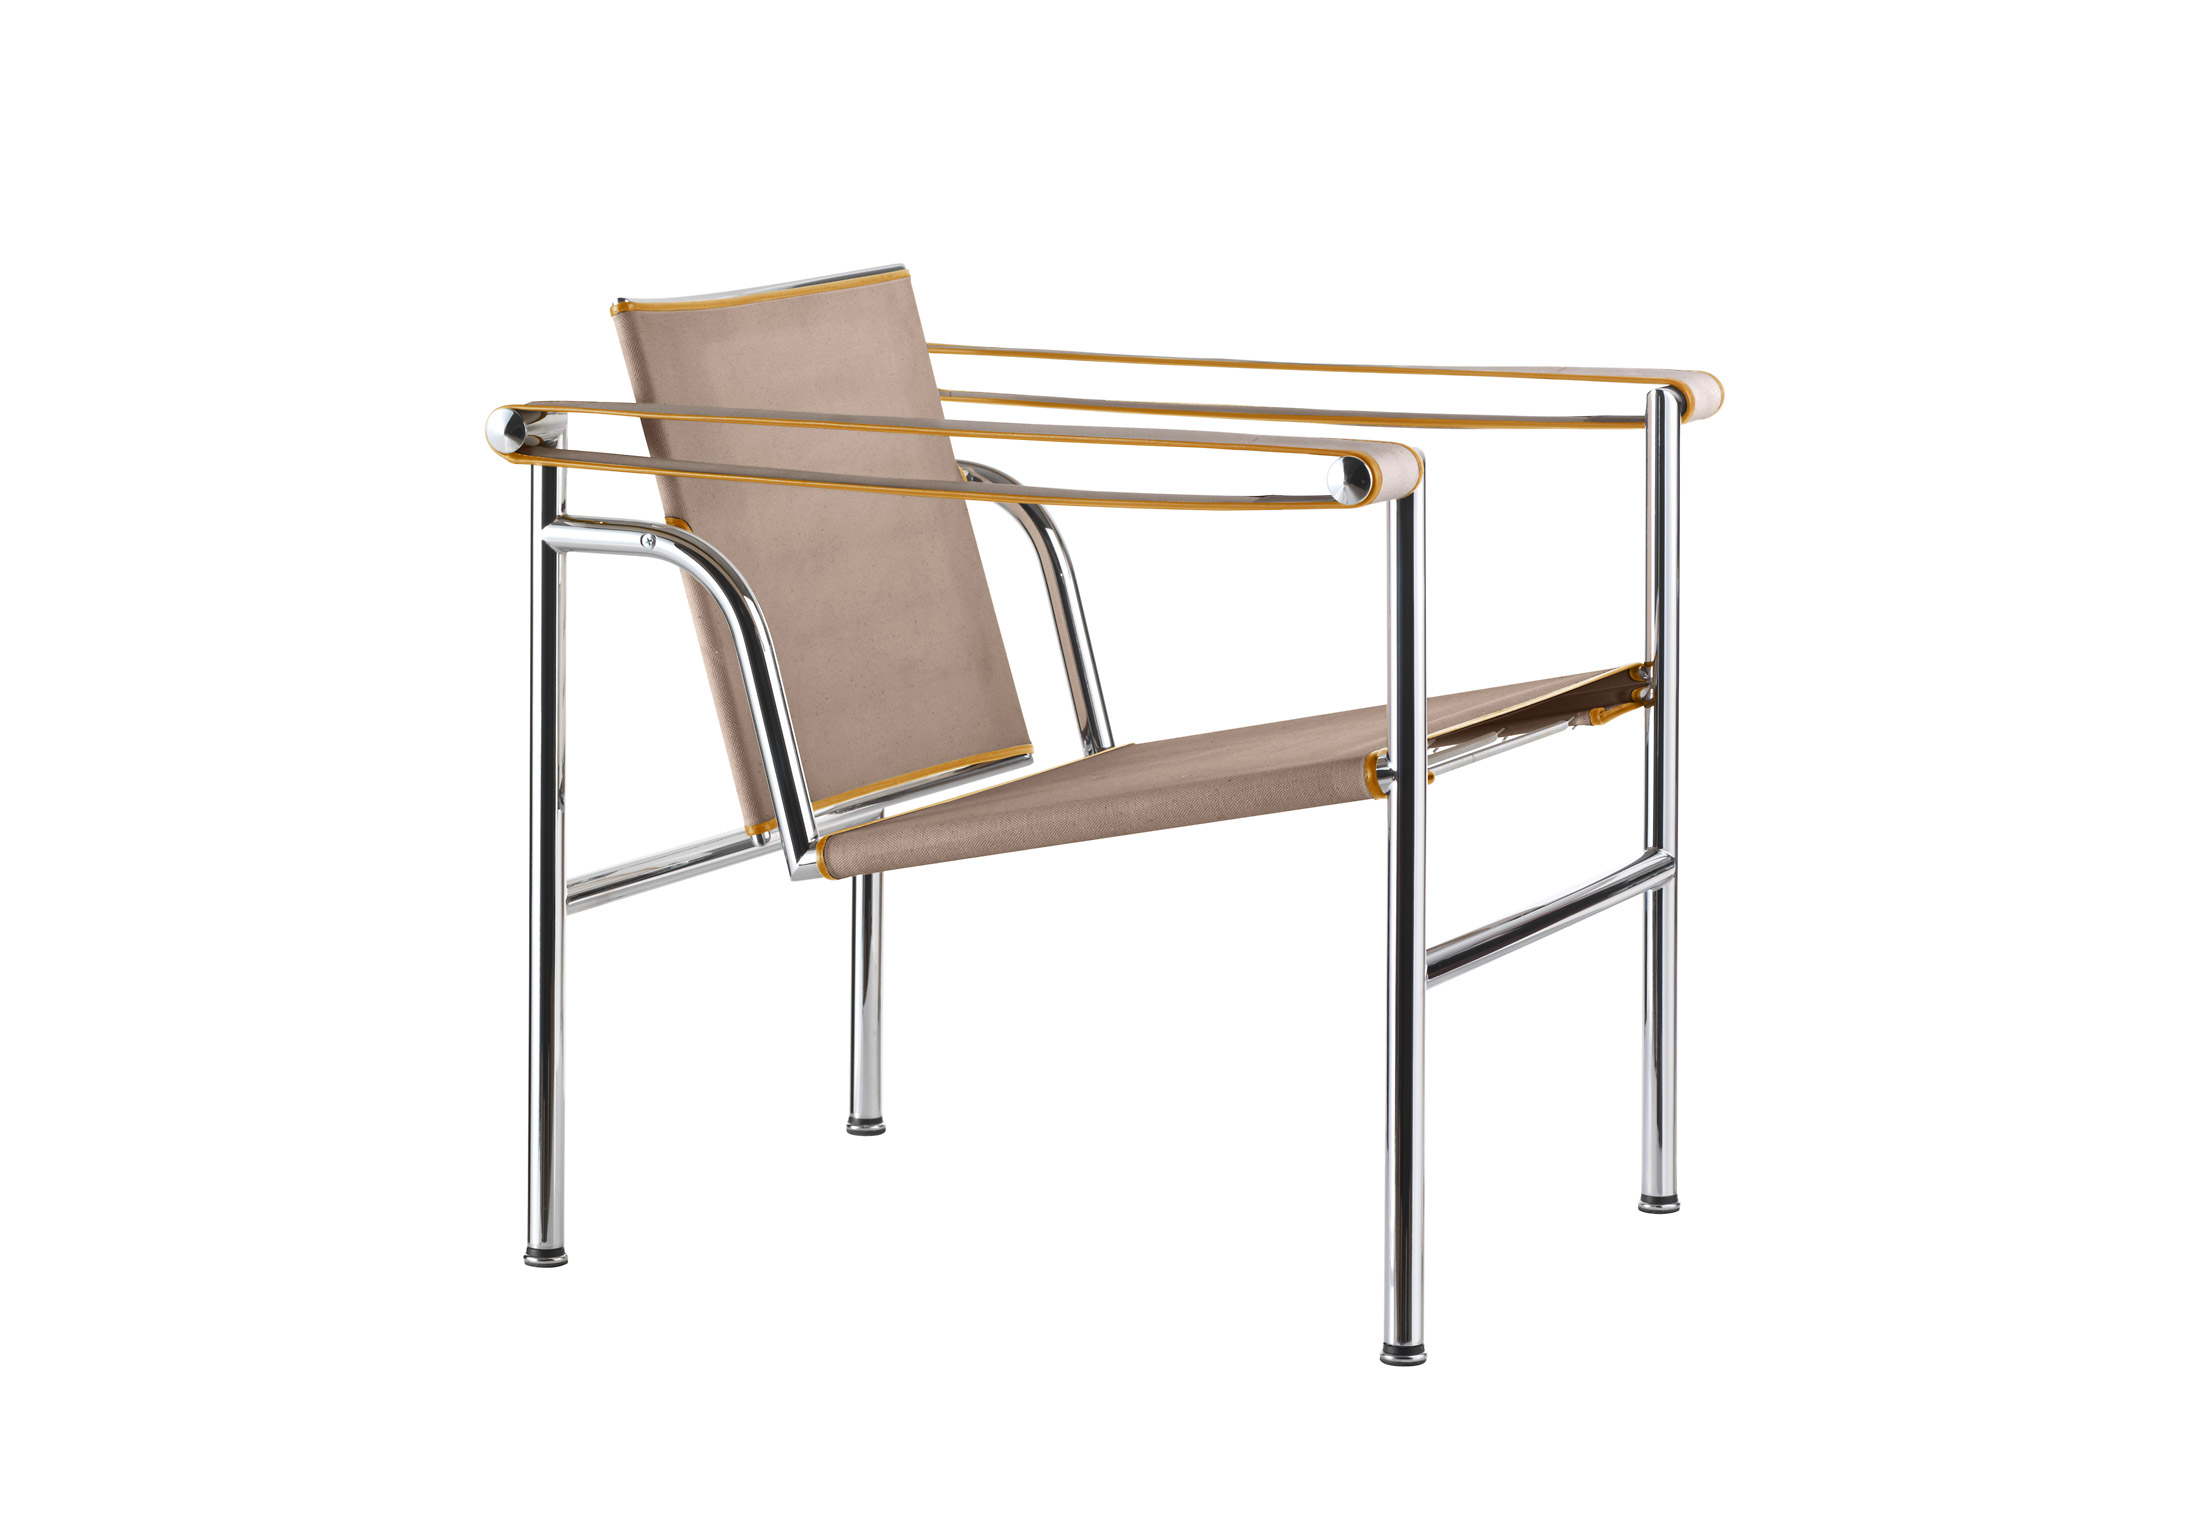 Chaise Lc1 lc1 uamcassina | stylepark